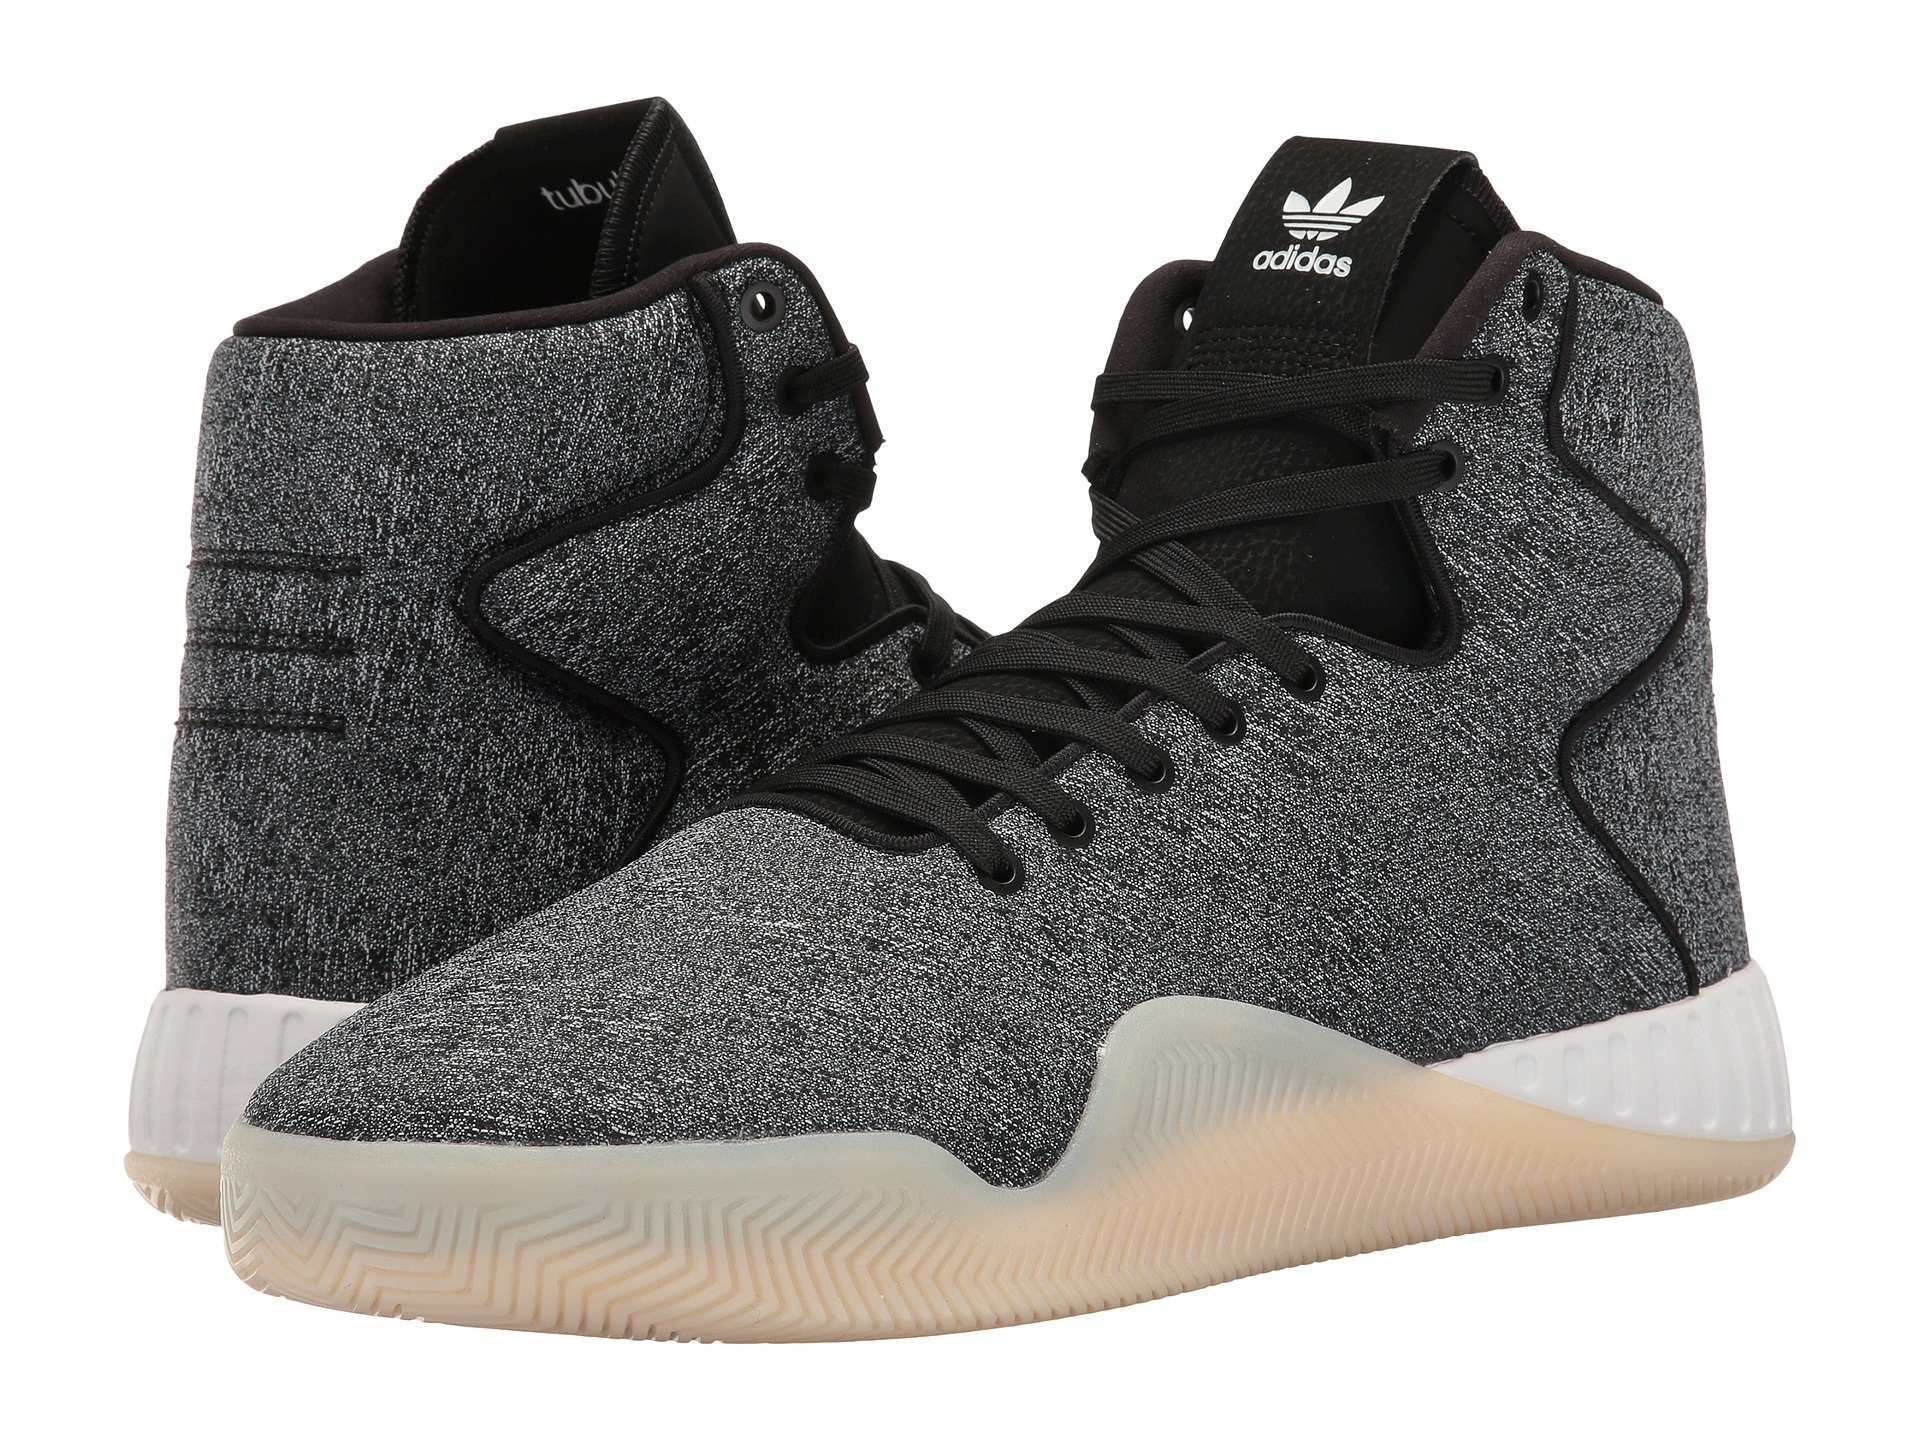 Cheap Adidas Tubular Euro Size 42 Athletic Shoes for Men